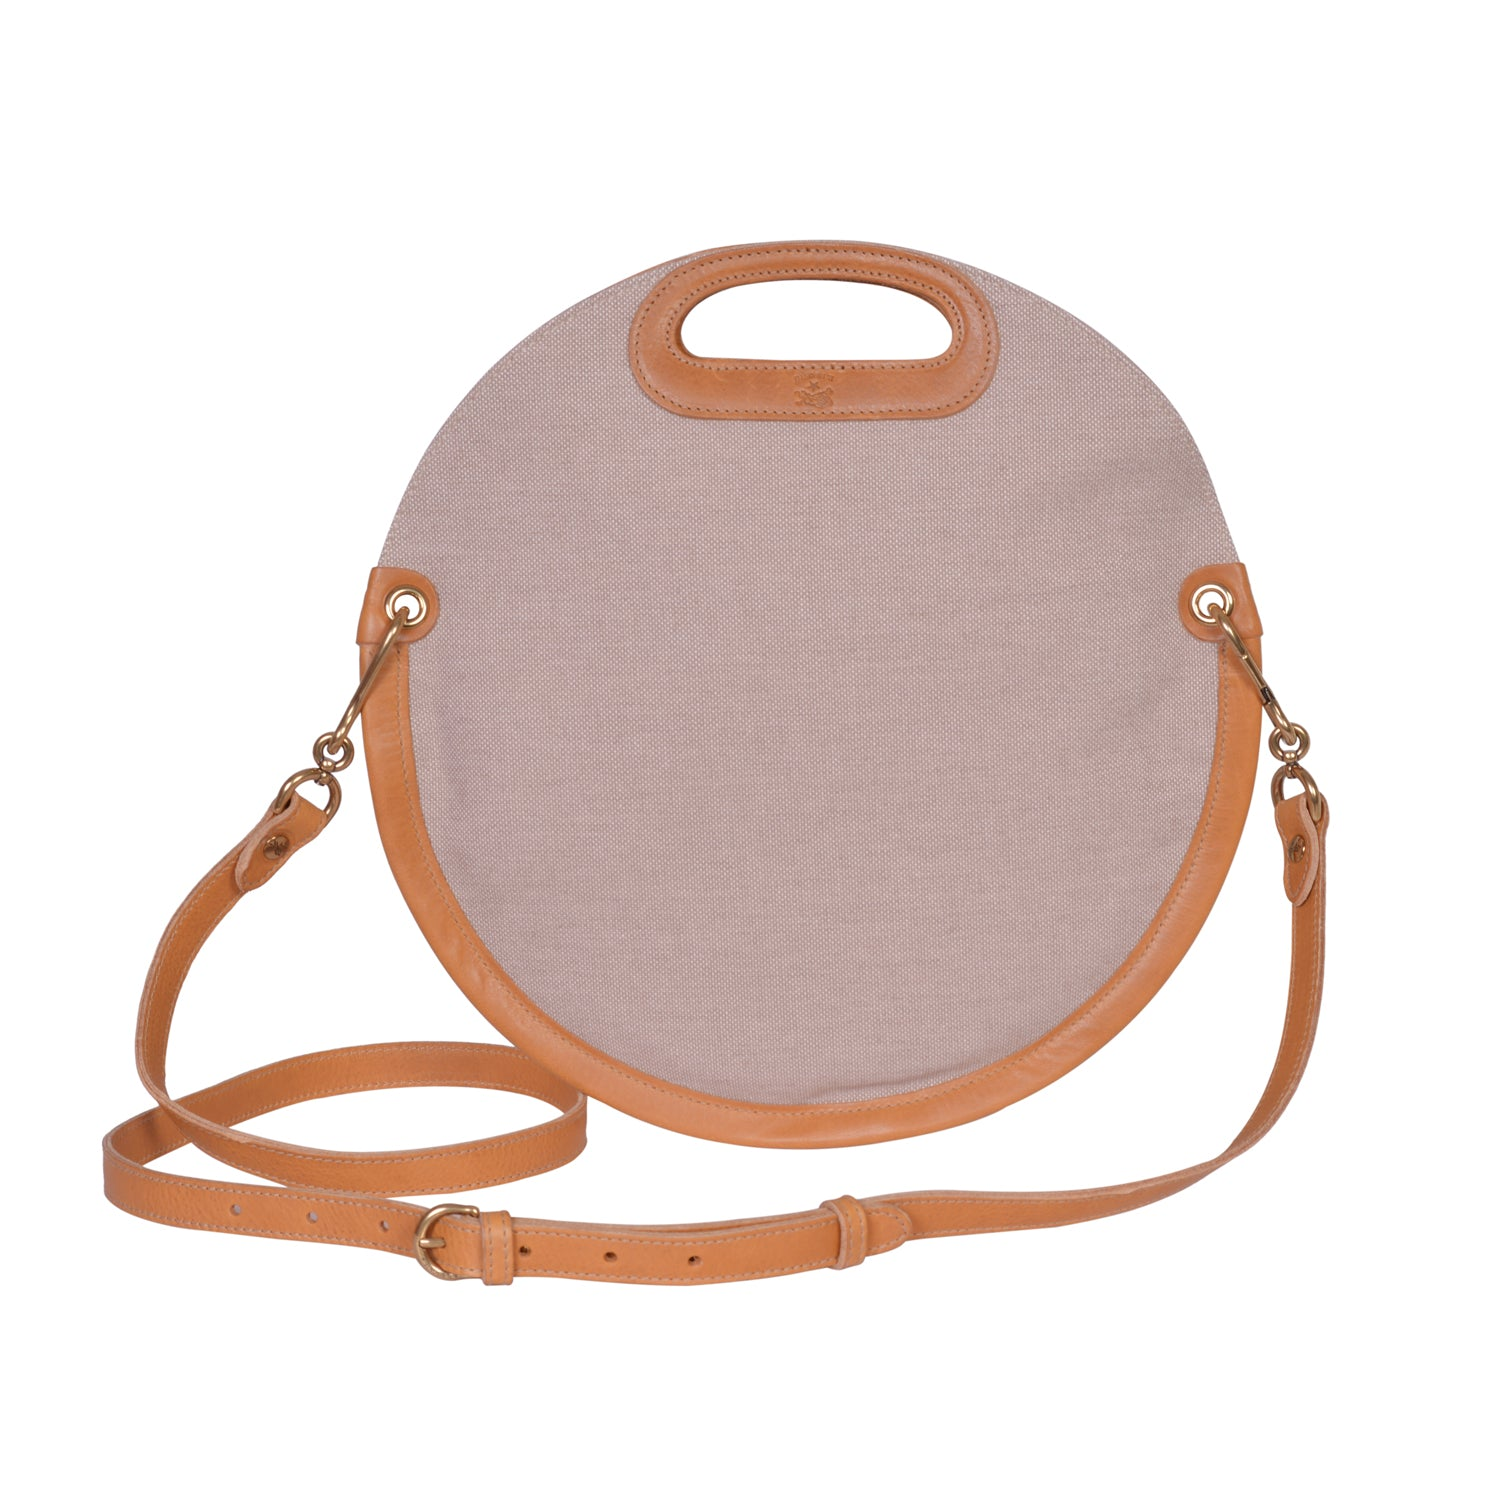 IL BISONTE  CASUAL WOMAN'S CIRCULAR HANDBAG IN NATURAL TECHNICAL FABRIC